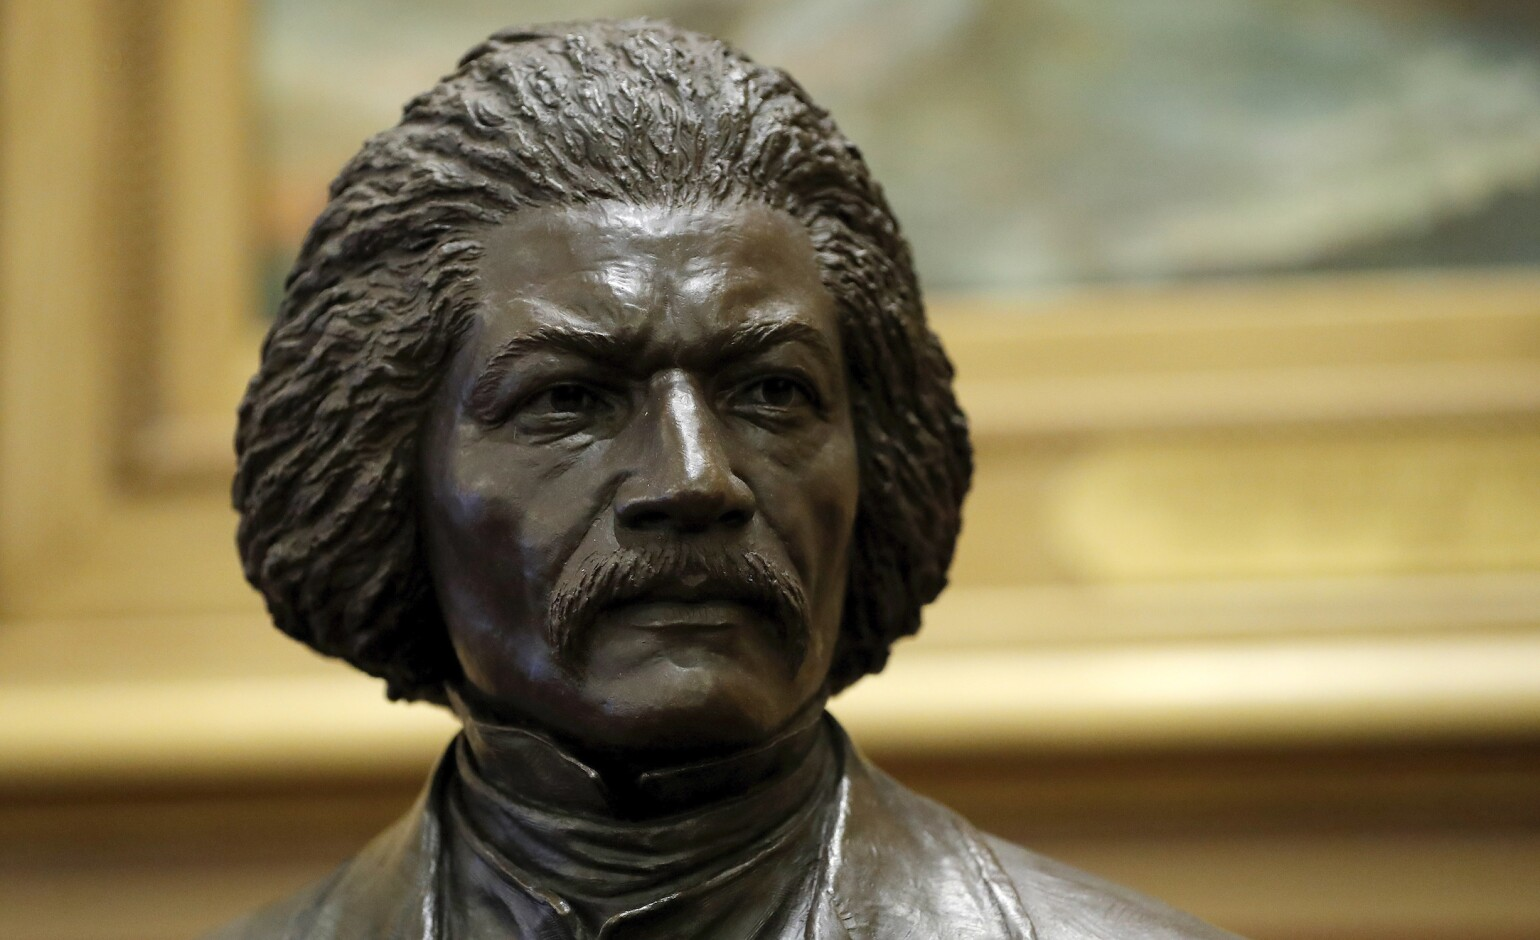 Frederick Douglass statue in New York removed from base and damaged